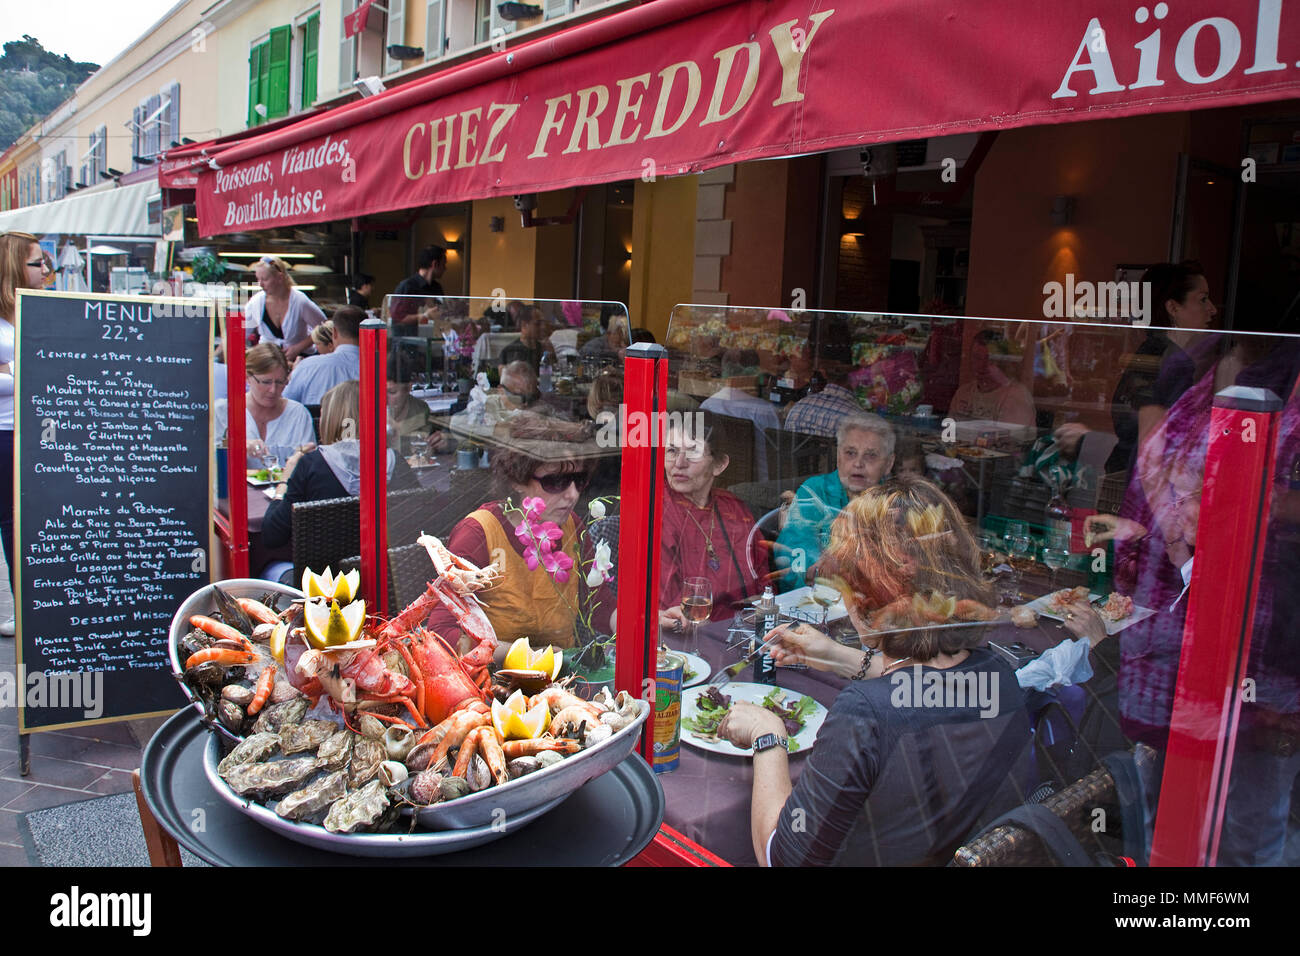 Street restaurant 'Chez Freddy' at place Cours Saleya, Nice, Côte d'Azur, Alpes-Maritimes, South France, France, Europe - Stock Image